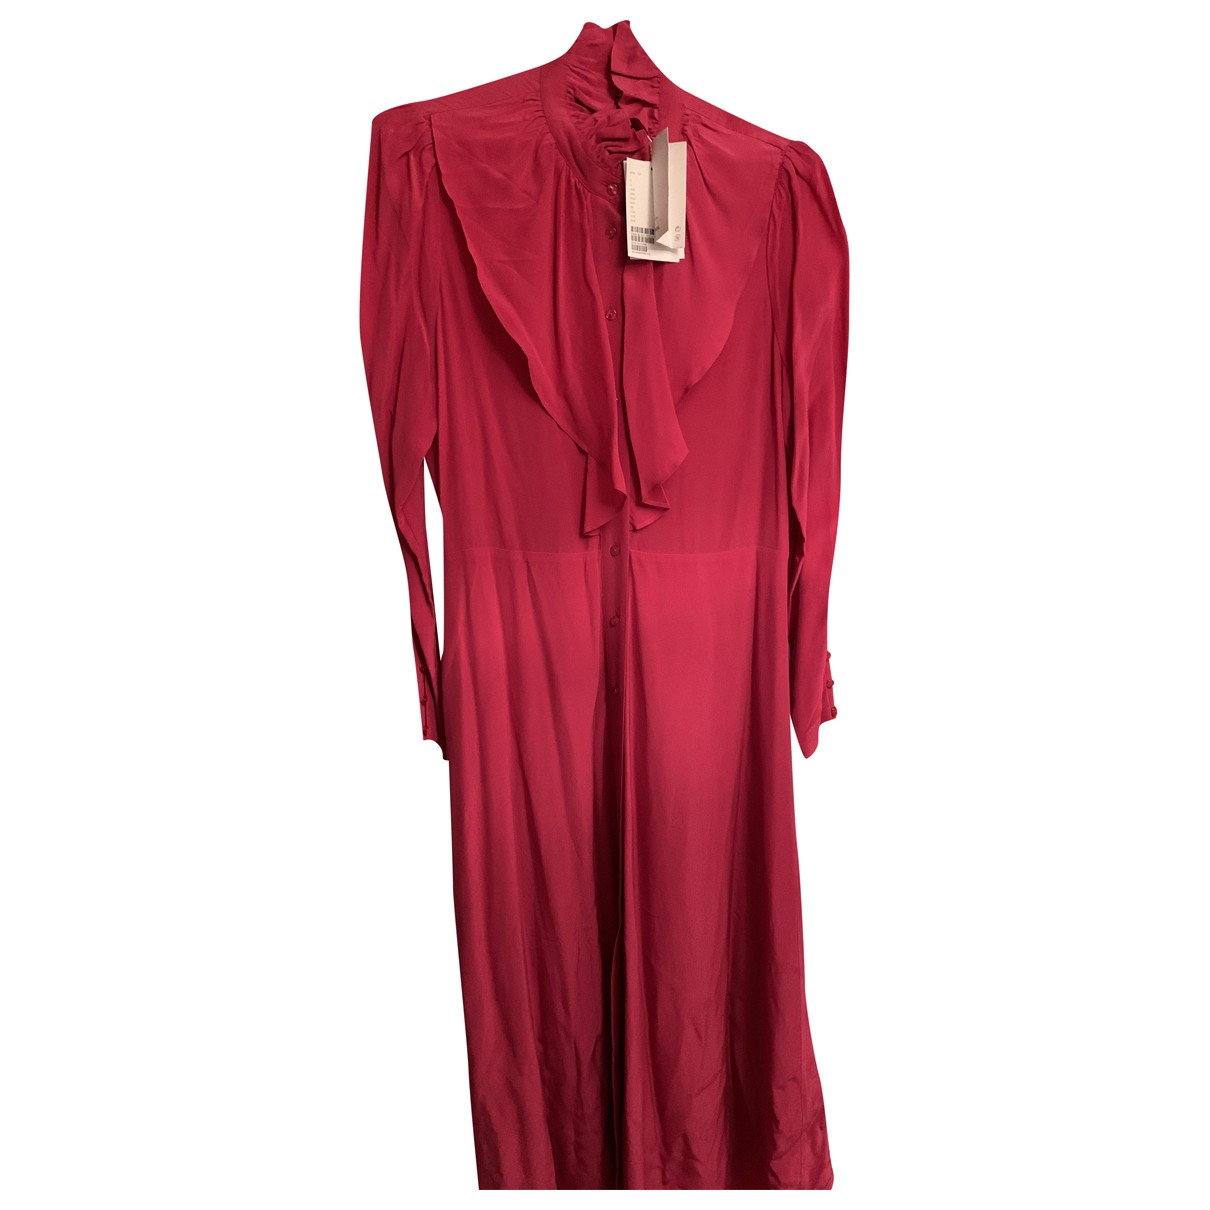 & Other Stories - Robe   pour femme - rose